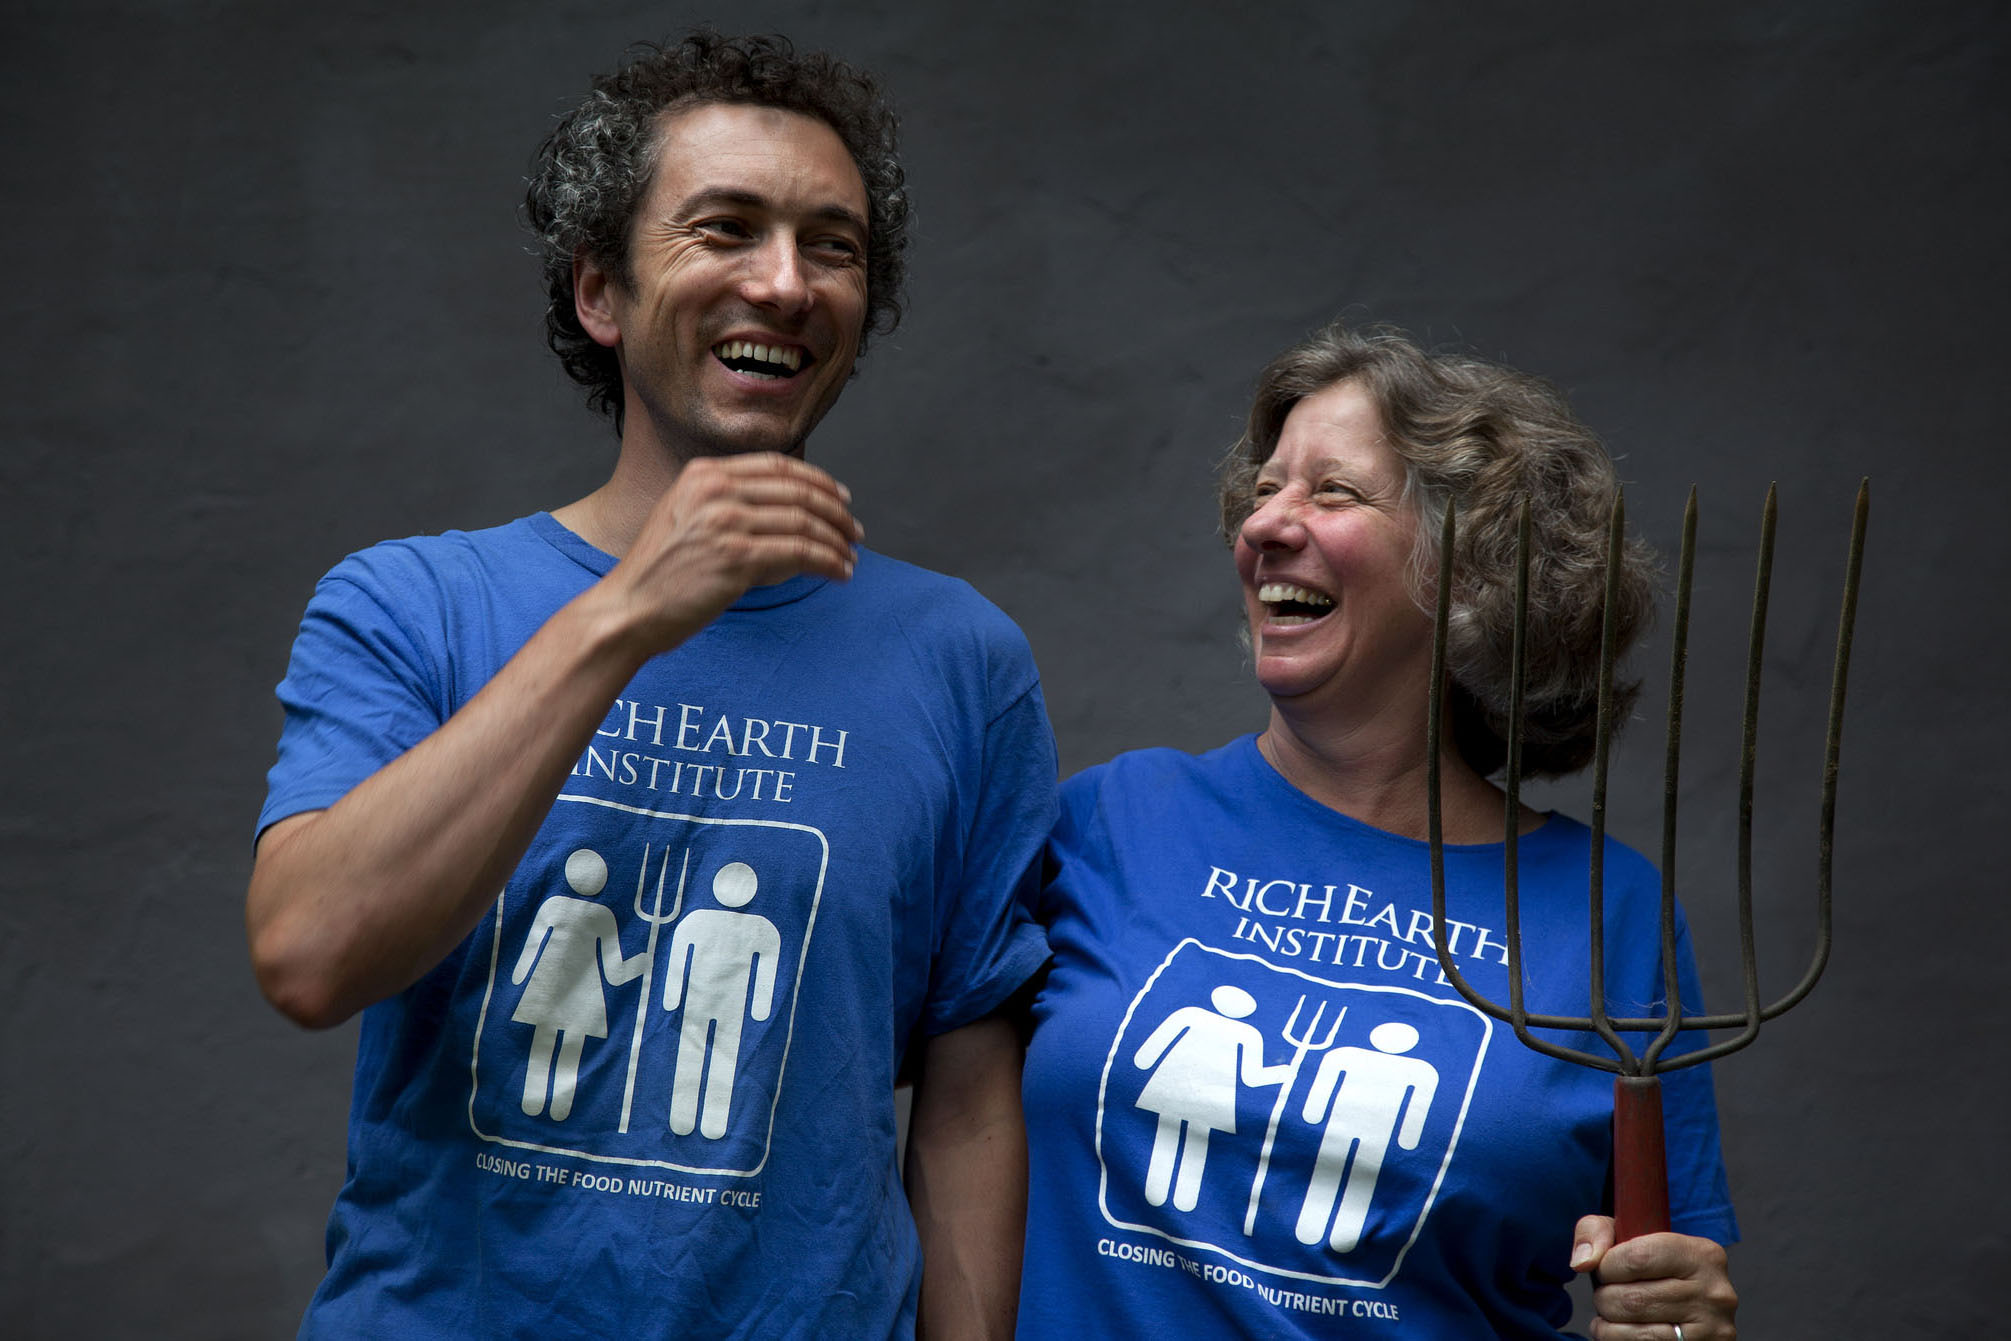 A photograph of the co-founders of the Rich Earth Institute.